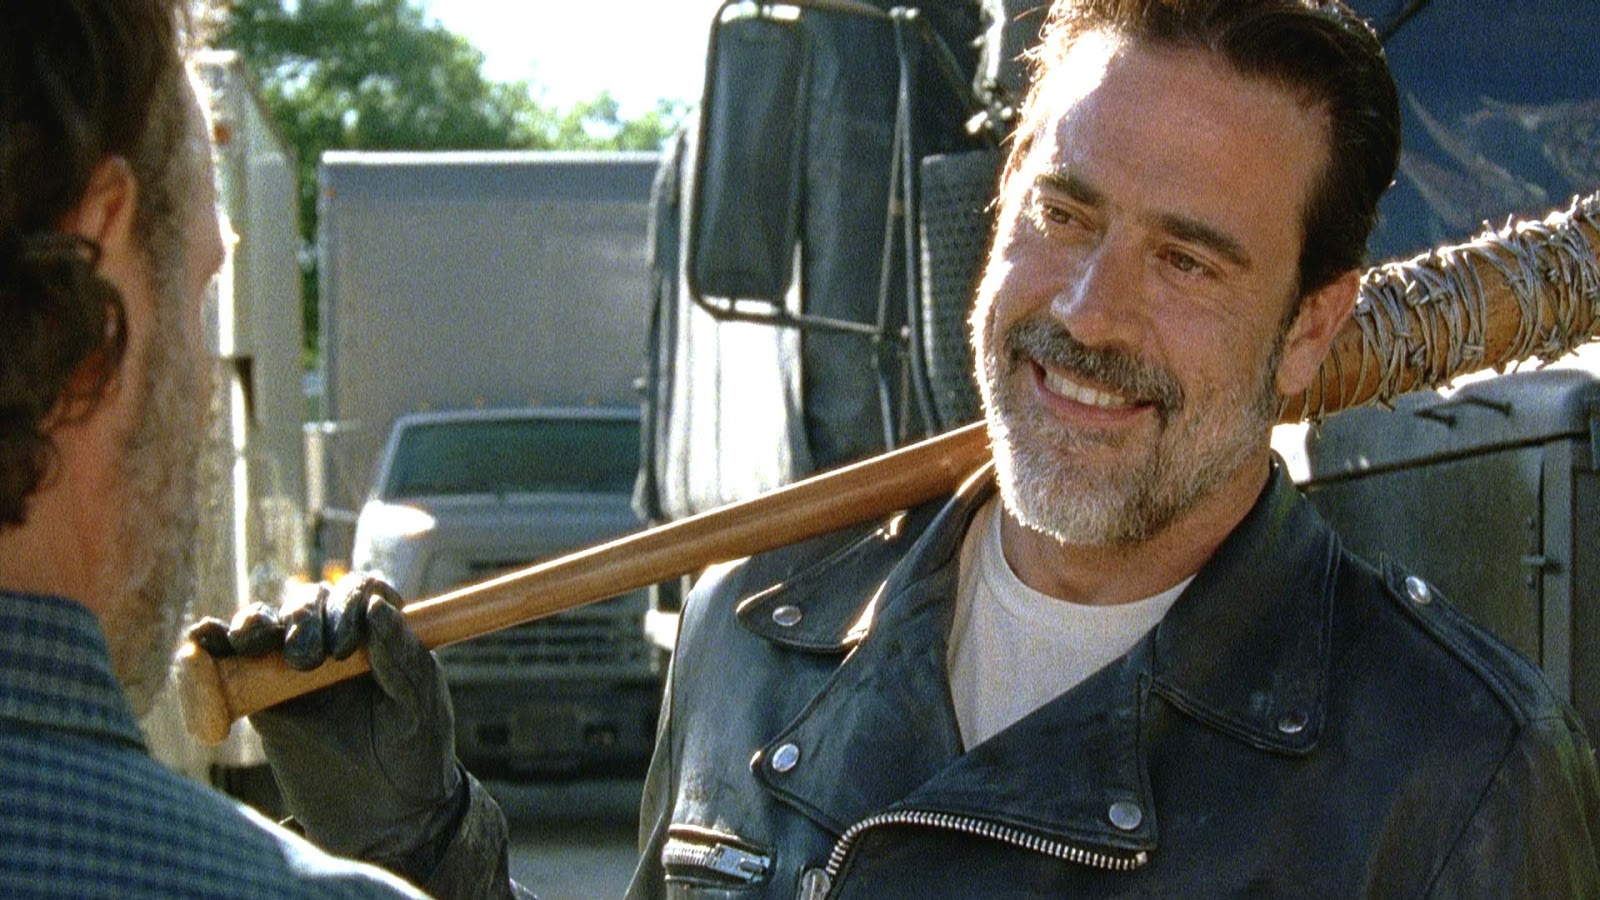 Negan sonríe en la cara de Rick en un episodio de The Walking Dead